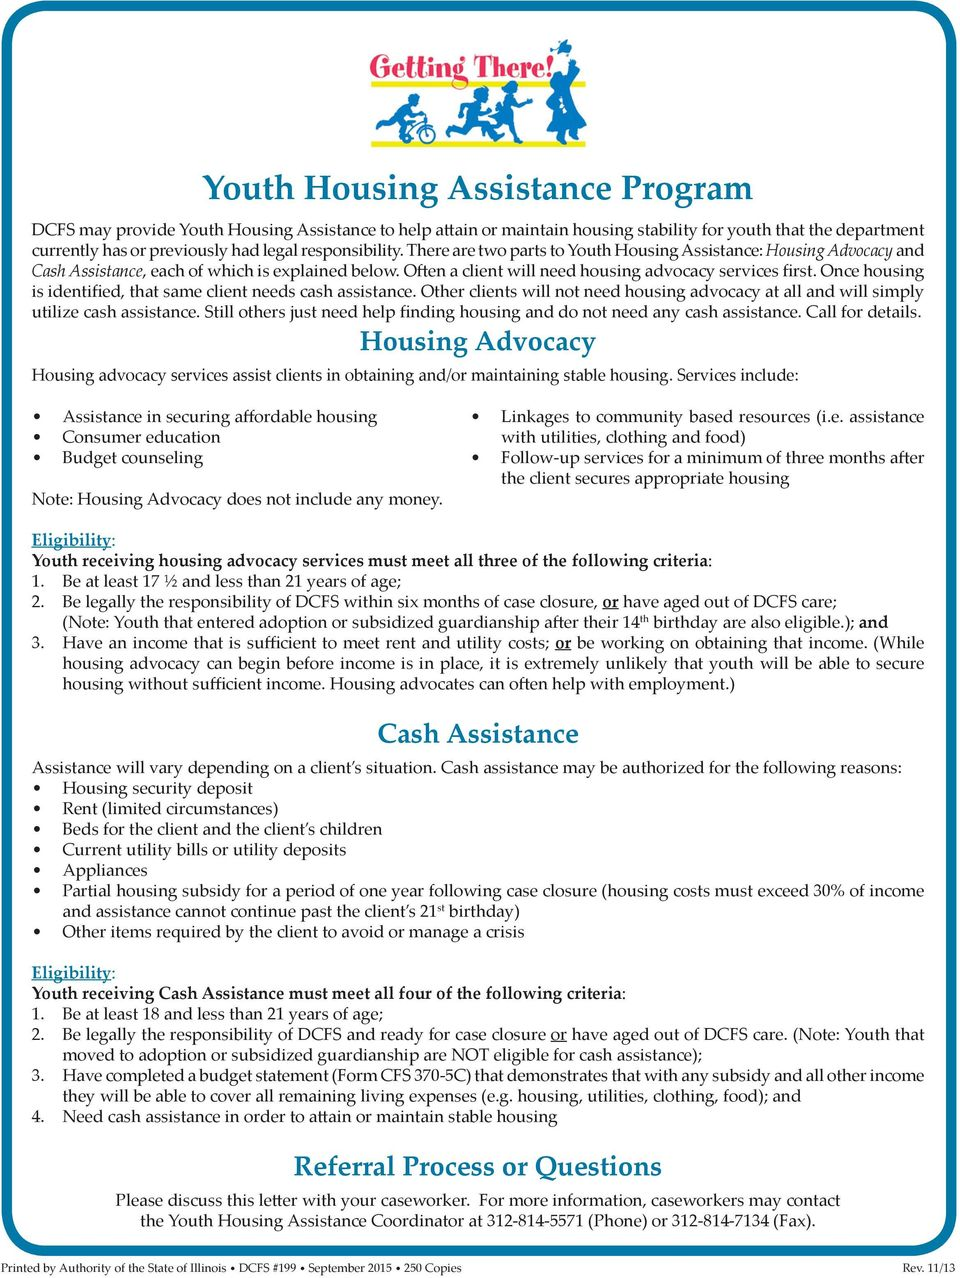 Once housing is identified, that same client needs cash assistance. Other clients will not need housing advocacy at all and will simply utilize cash assistance.